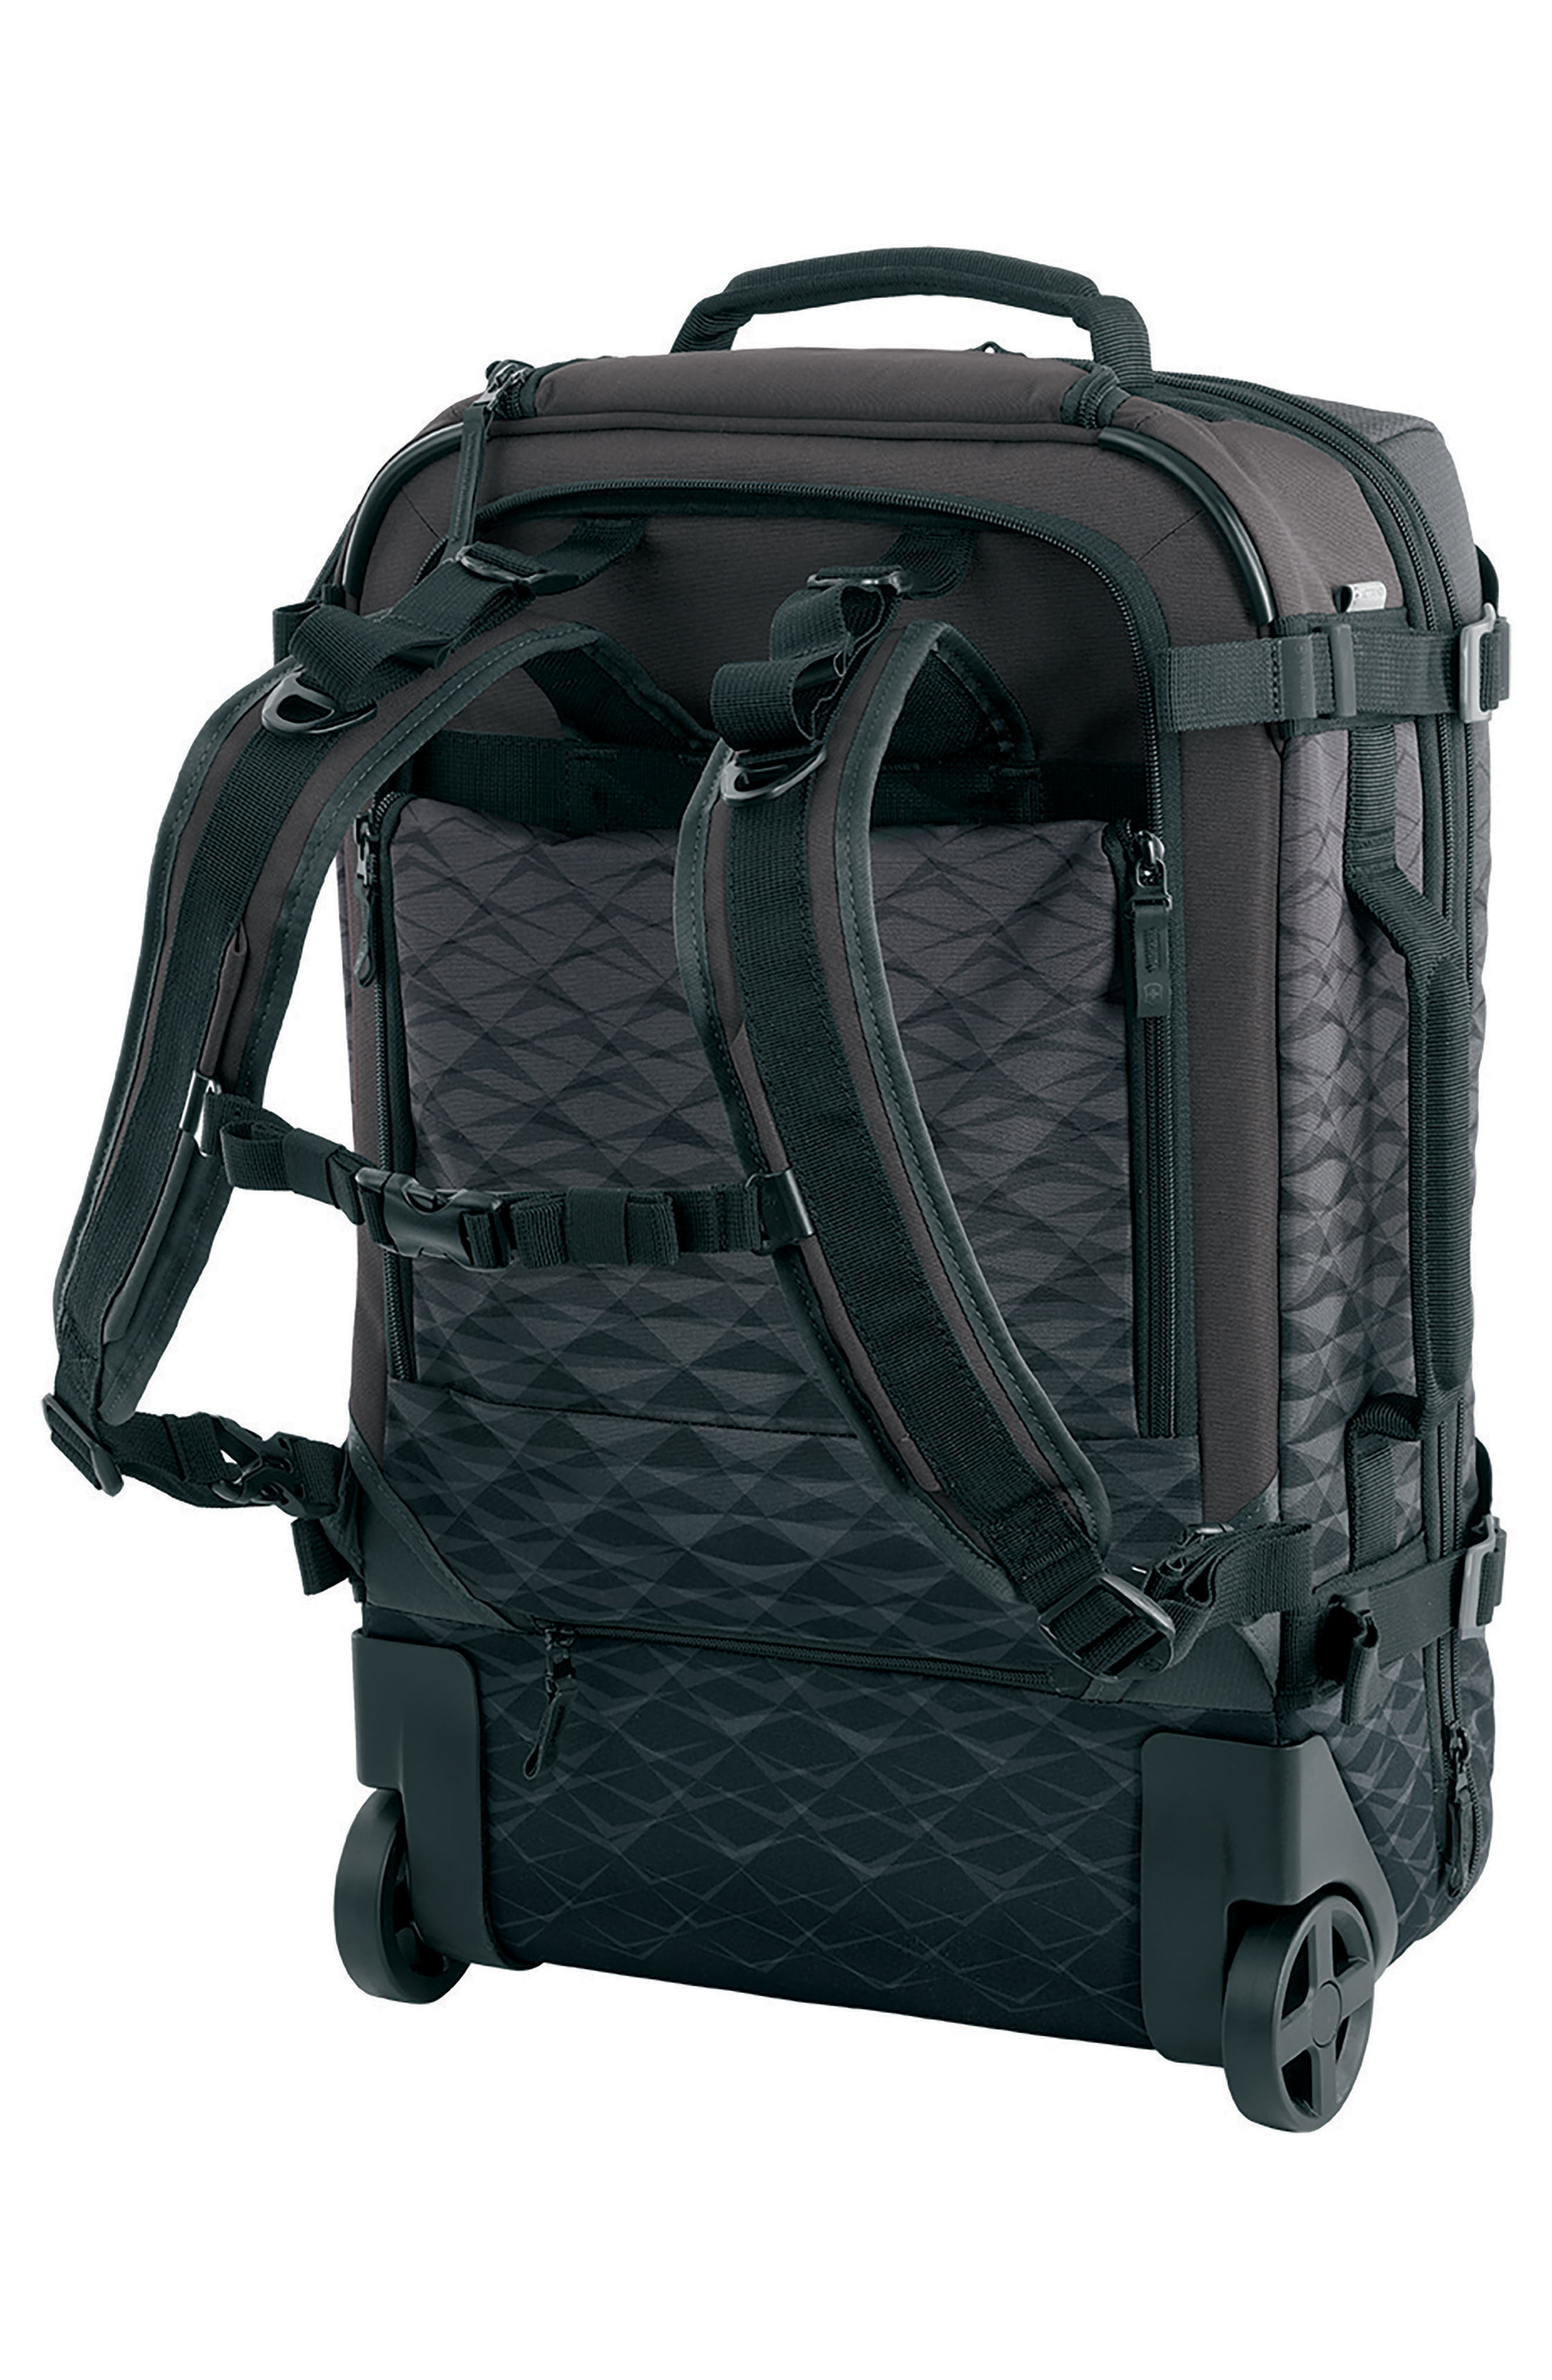 VX Touring 22-Inch Convertible Carry-On,                             Alternate thumbnail 2, color,                             Anthracite